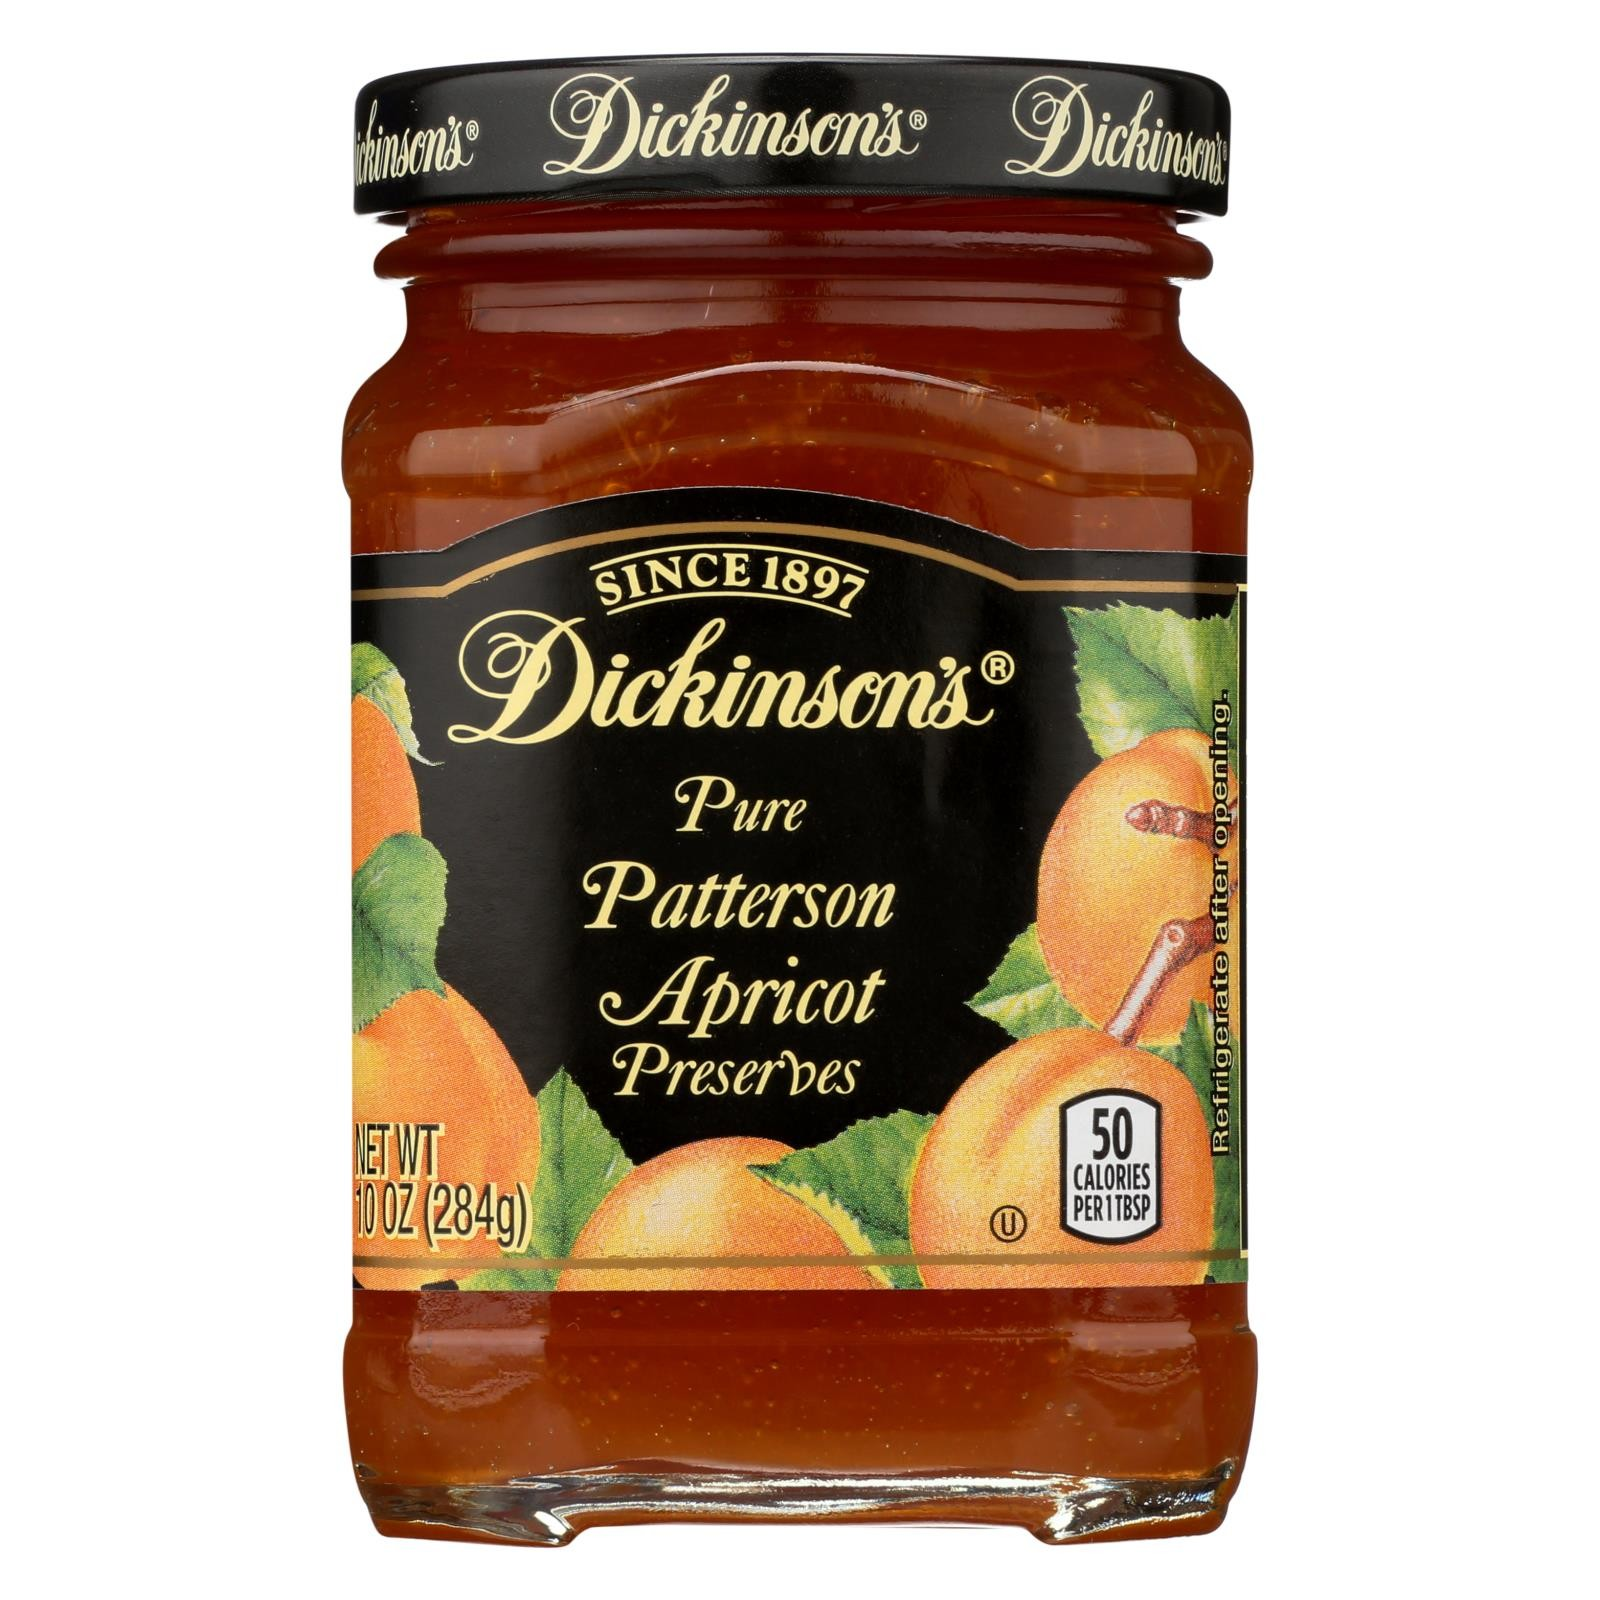 Dickinson Pure Patterson Apricot Preserves - 10 oz.